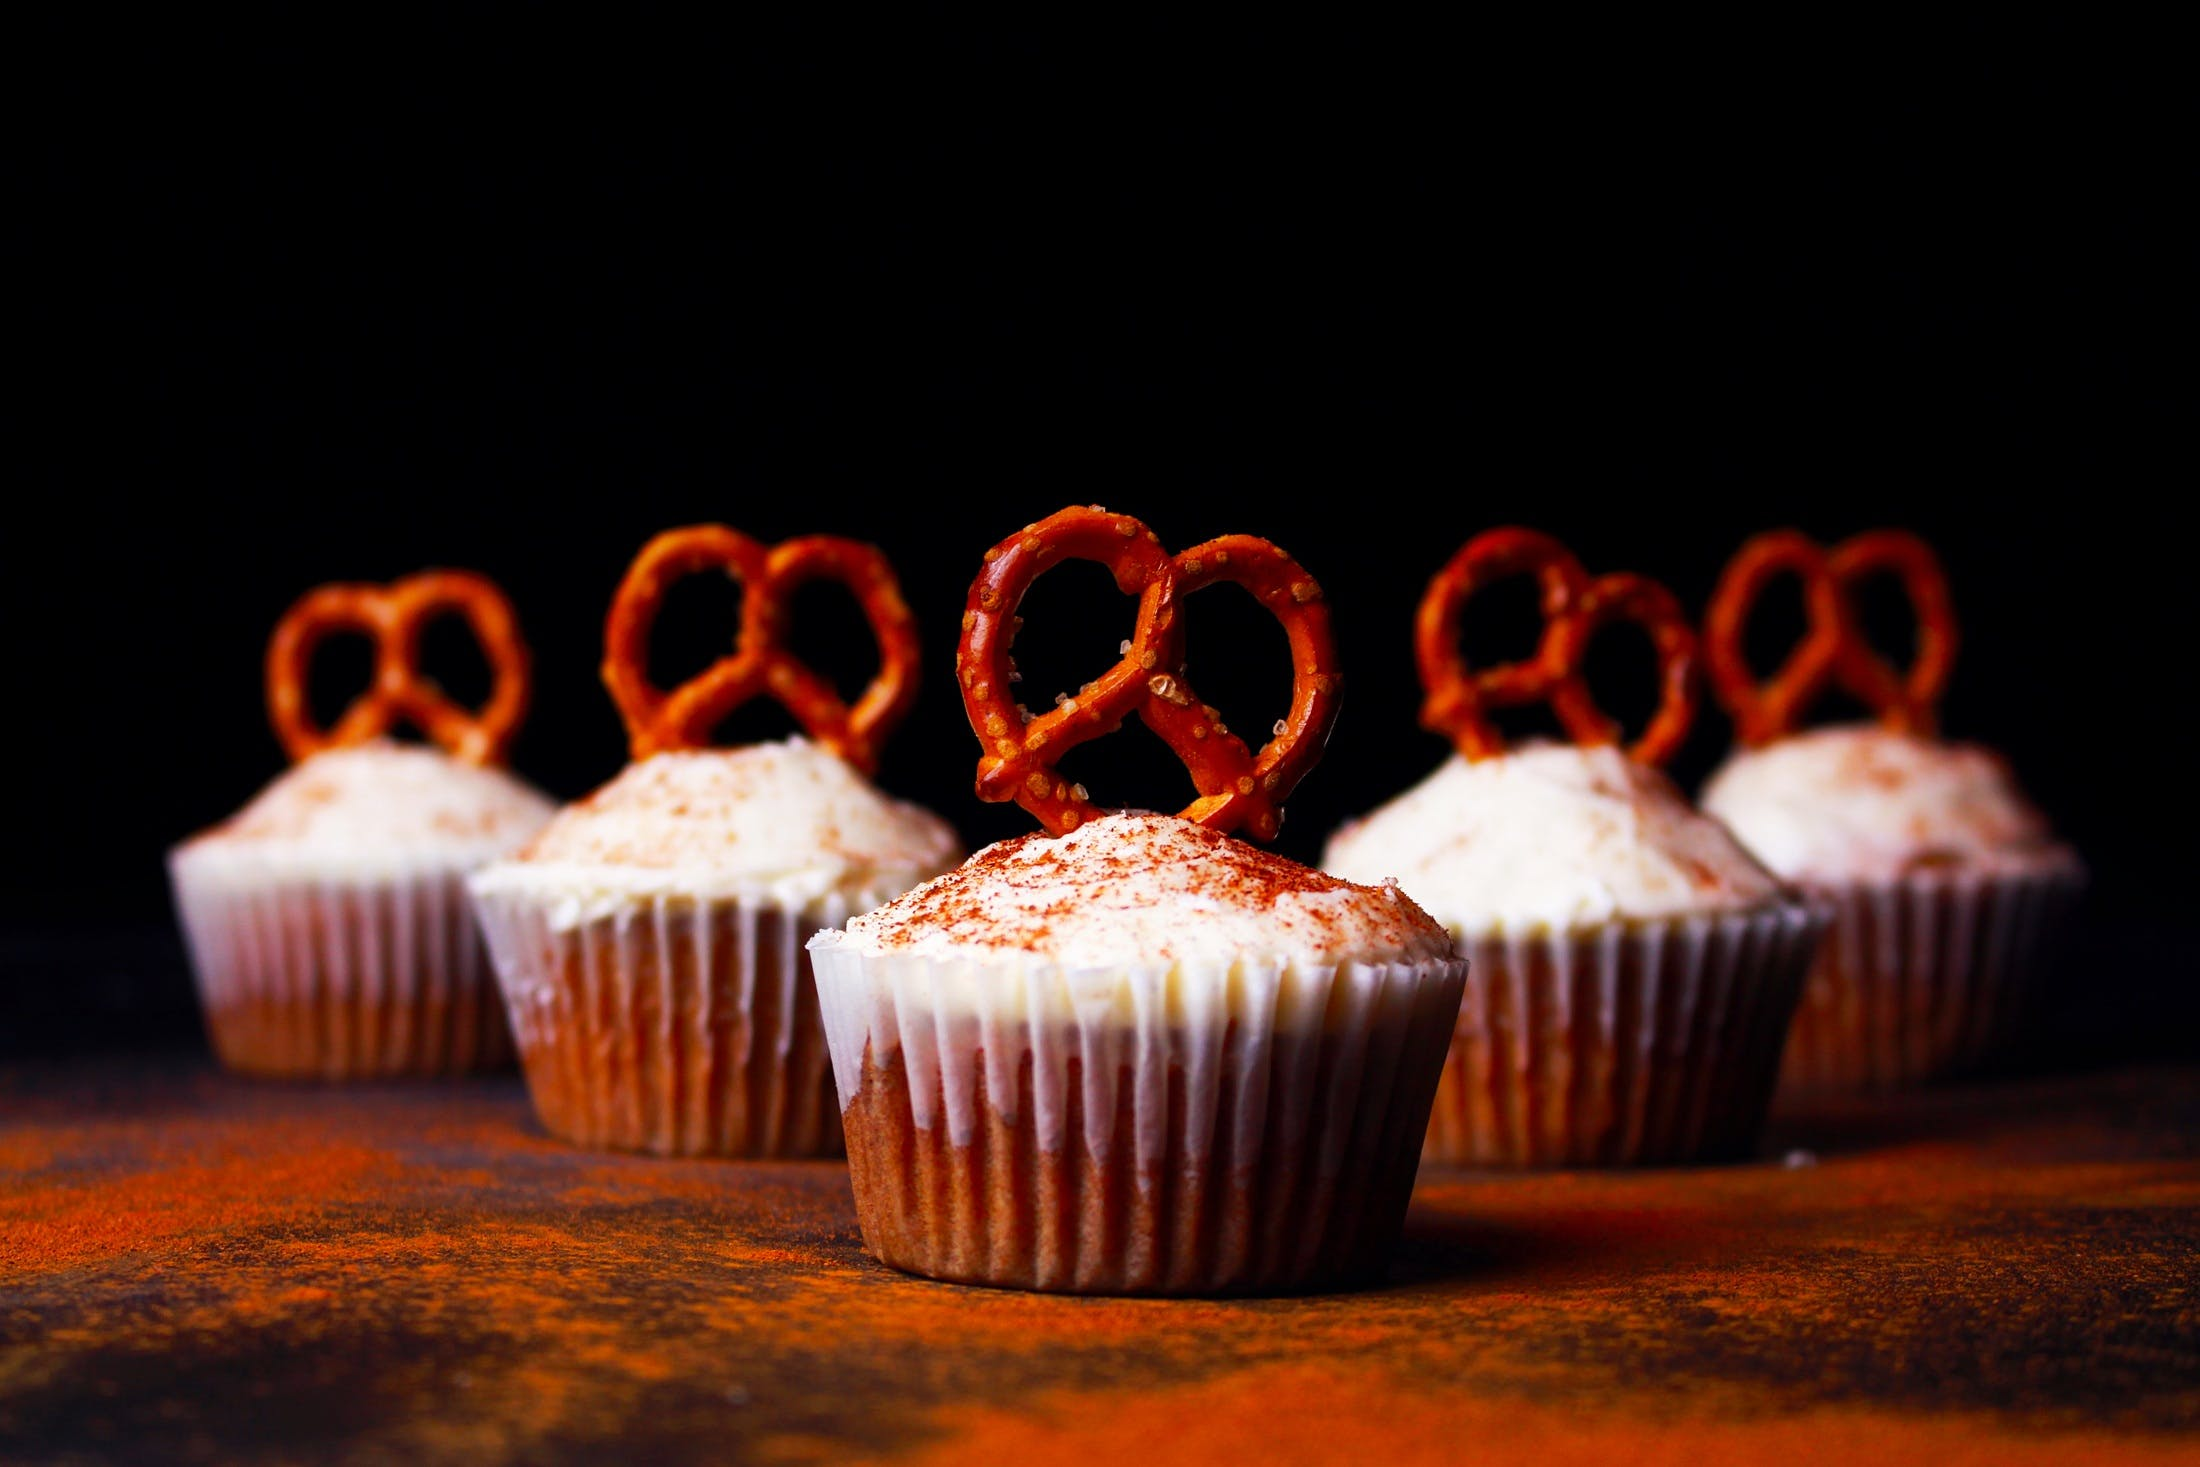 Selective Focus Photography of Cupcake With Knots